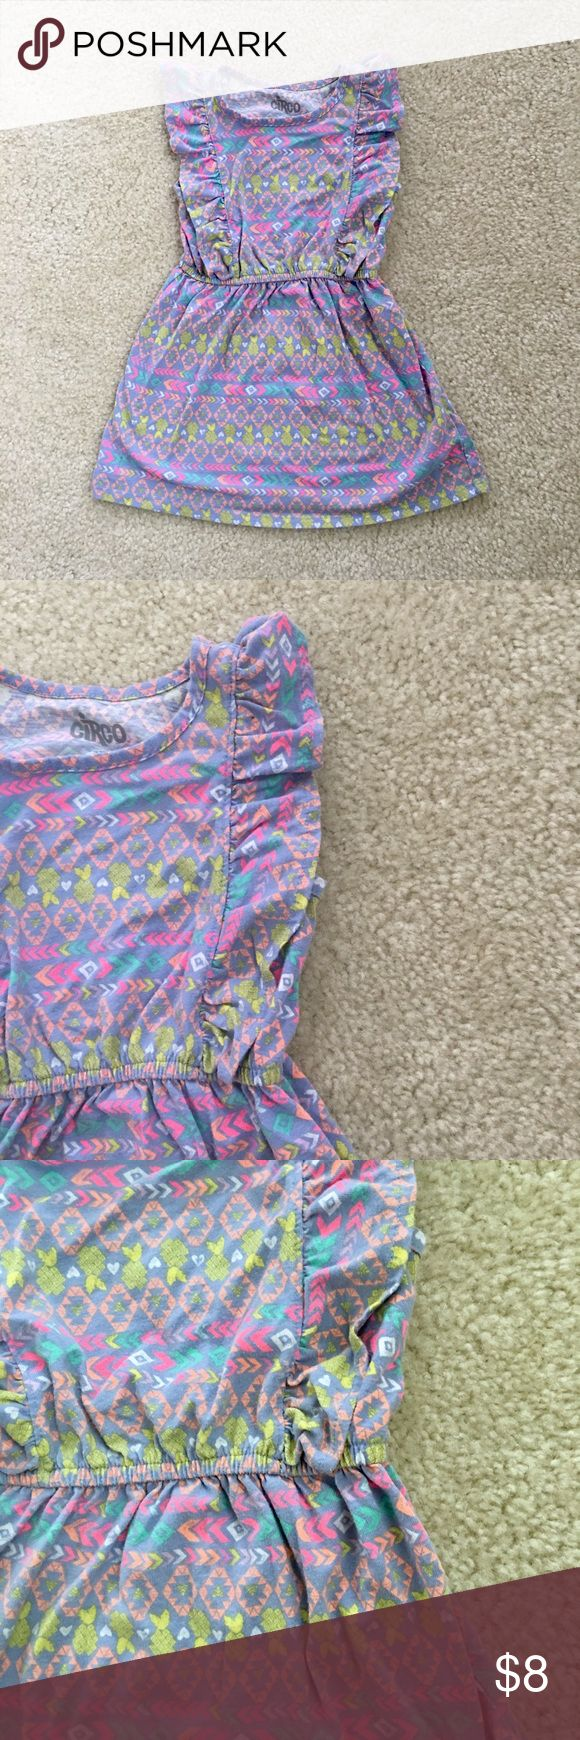 Circo Aztec Print Dress (Toddler Girls, 3T) Circo Aztec print dress. Toddler girls, 3T. Material is lightweight and great for a warm Spring or Summer day. Gently worn. Asking $8 firm. Circo Dresses Casual